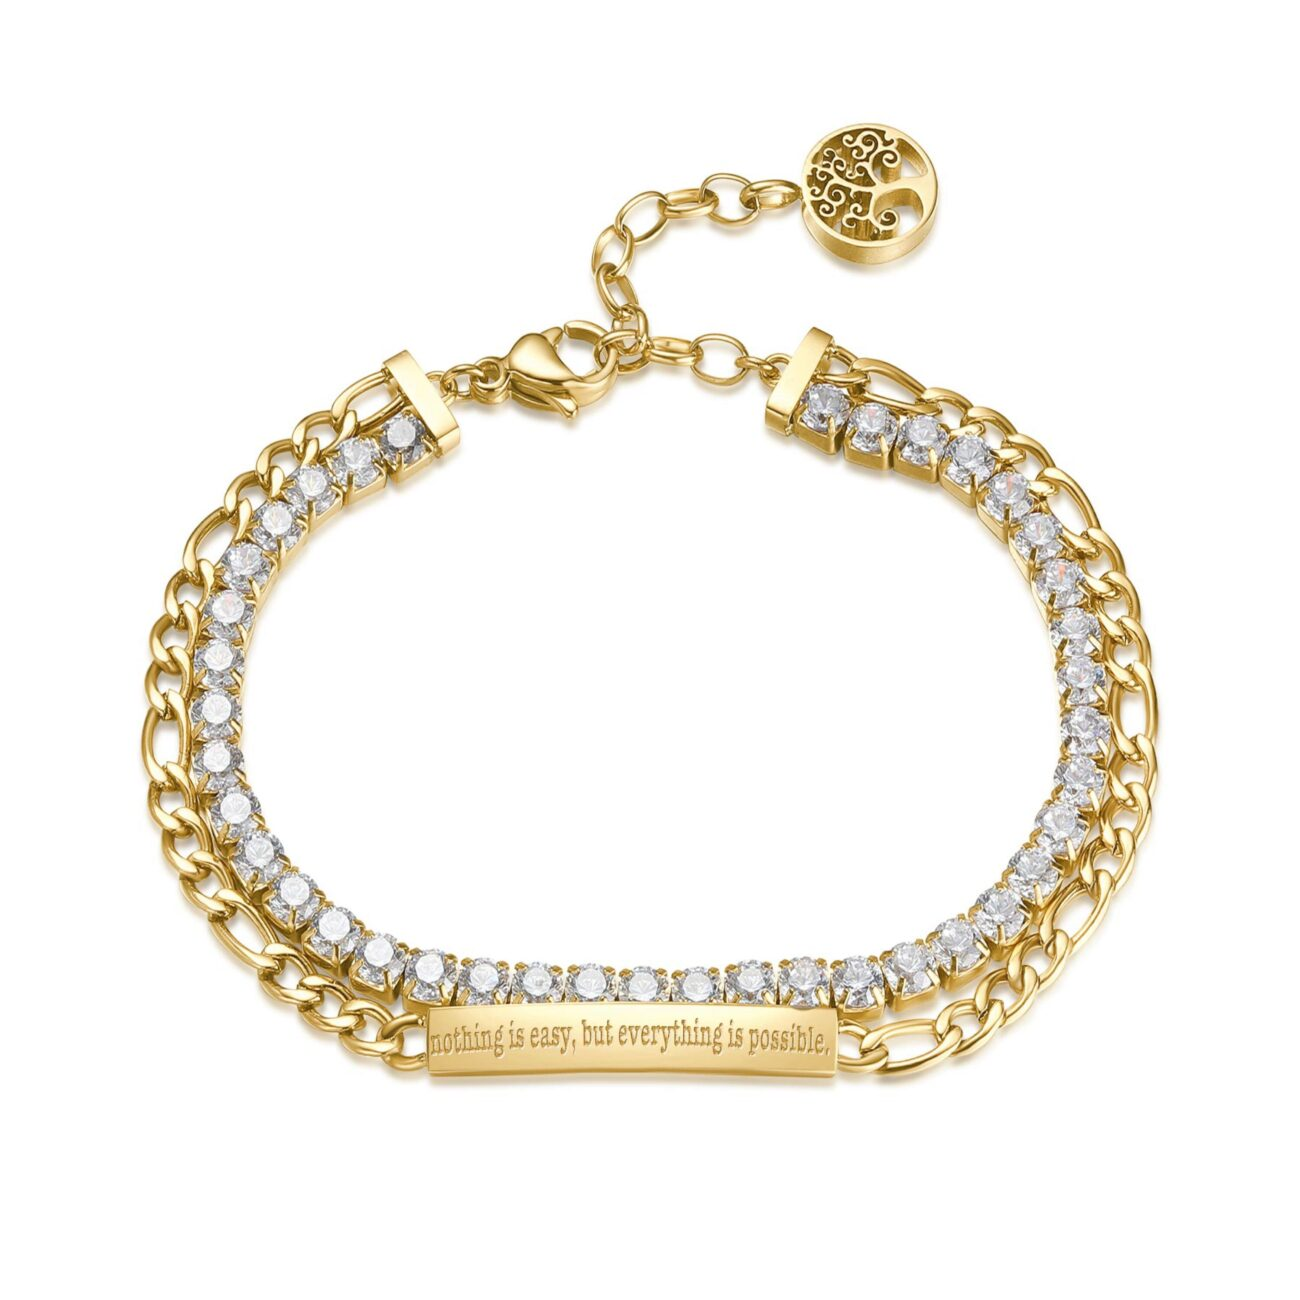 ENGRAVED: Nothing is easy, but everything is possible (front) 304 stainless steel double tennis bracelet and gold finishes with white cubic zirconia and bar.